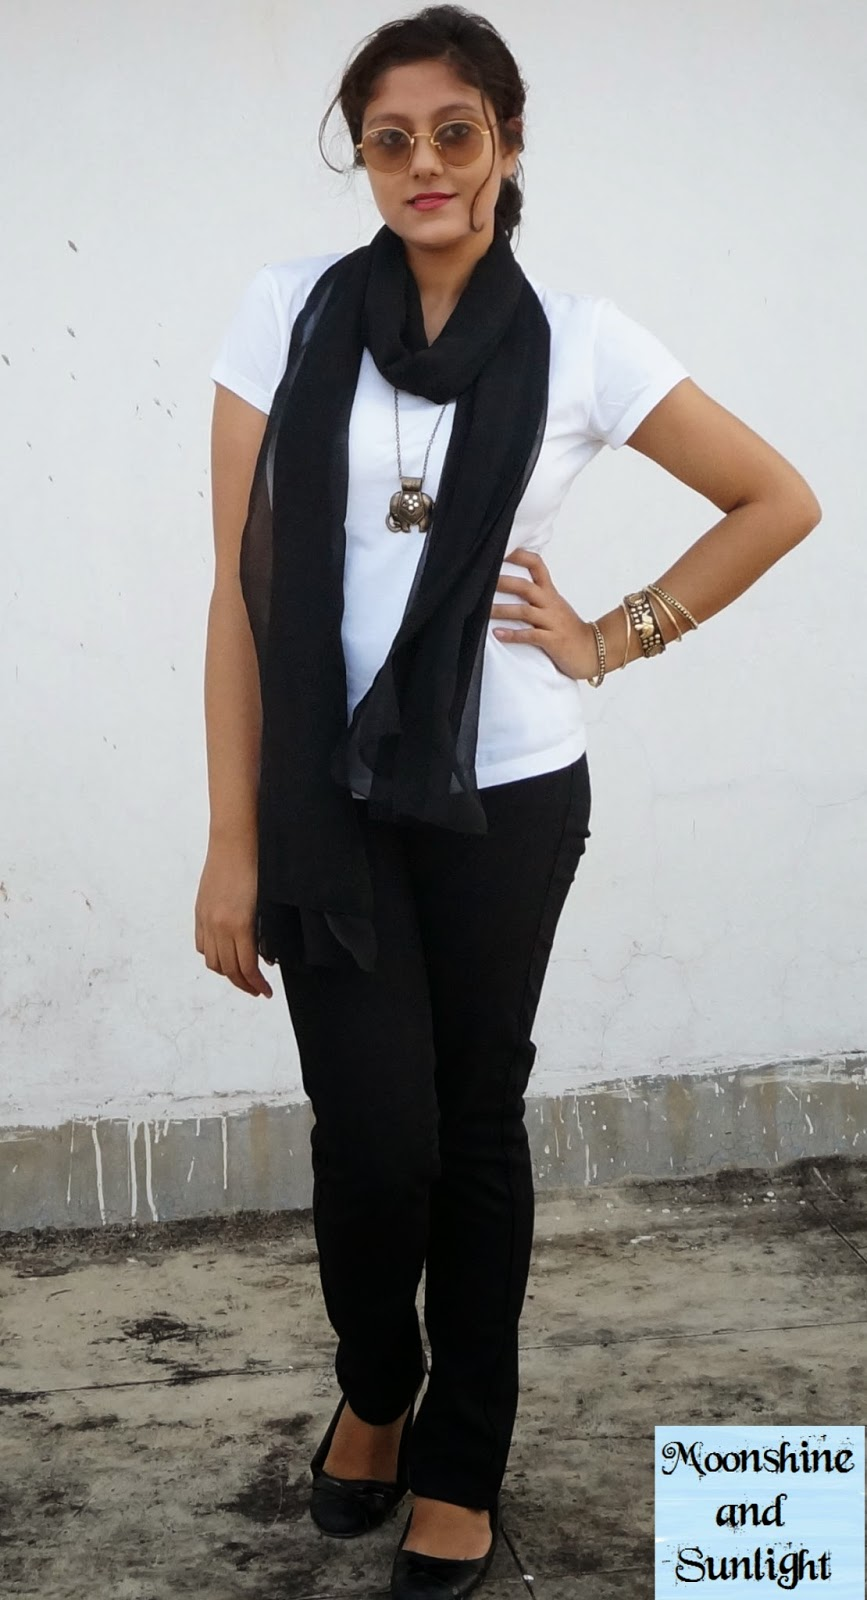 Indian Fashion blog - First OOTD First shades